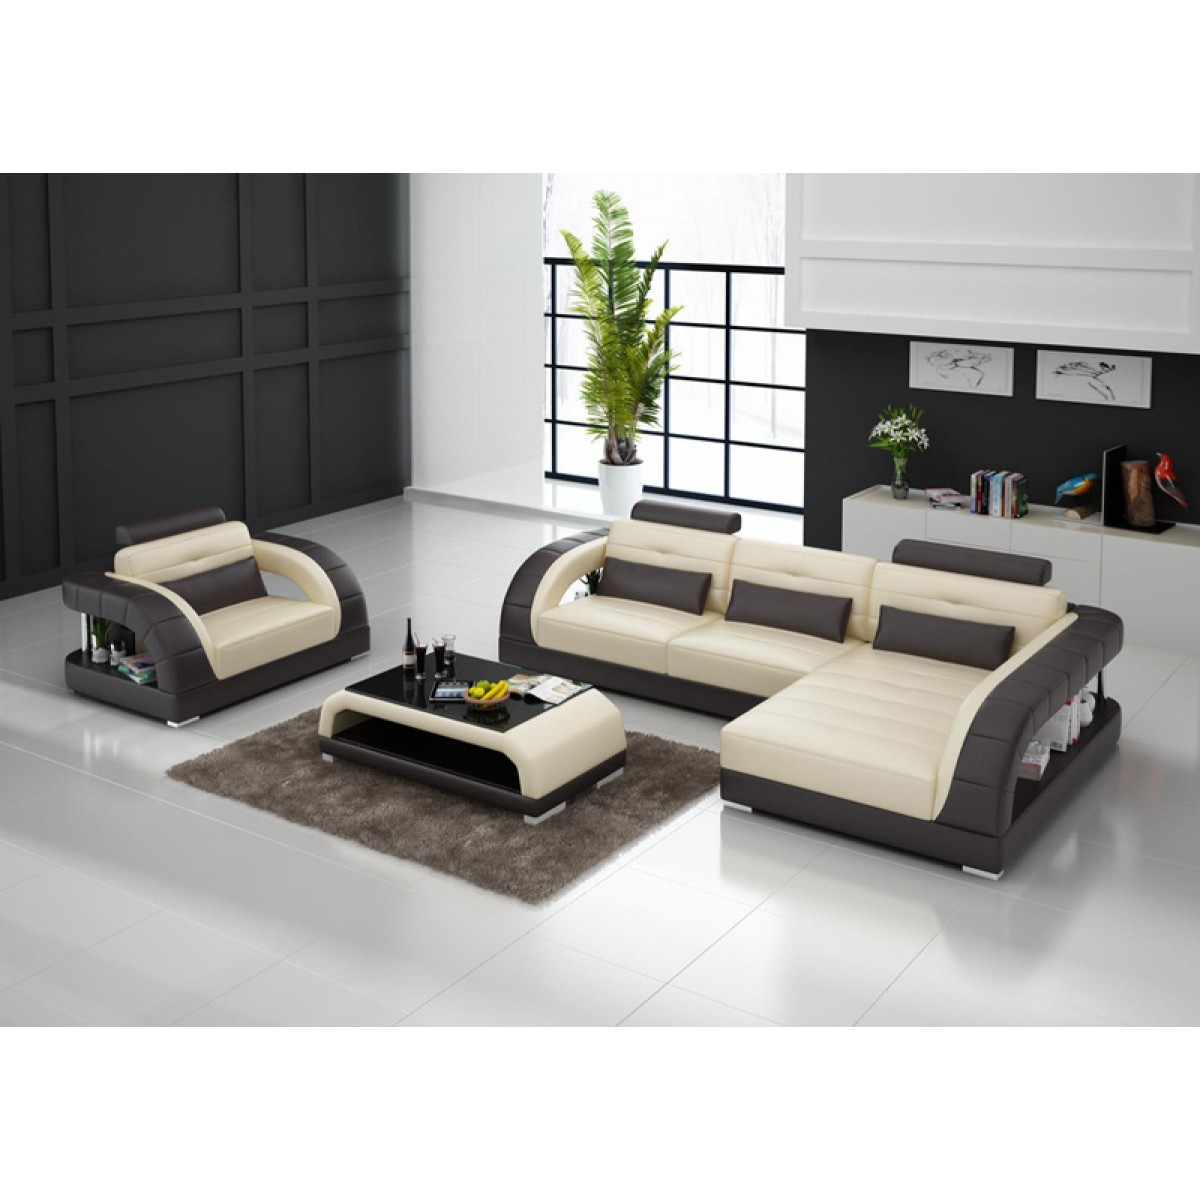 beautiful canape demi lune 6 canape d angle en cuir. Black Bedroom Furniture Sets. Home Design Ideas